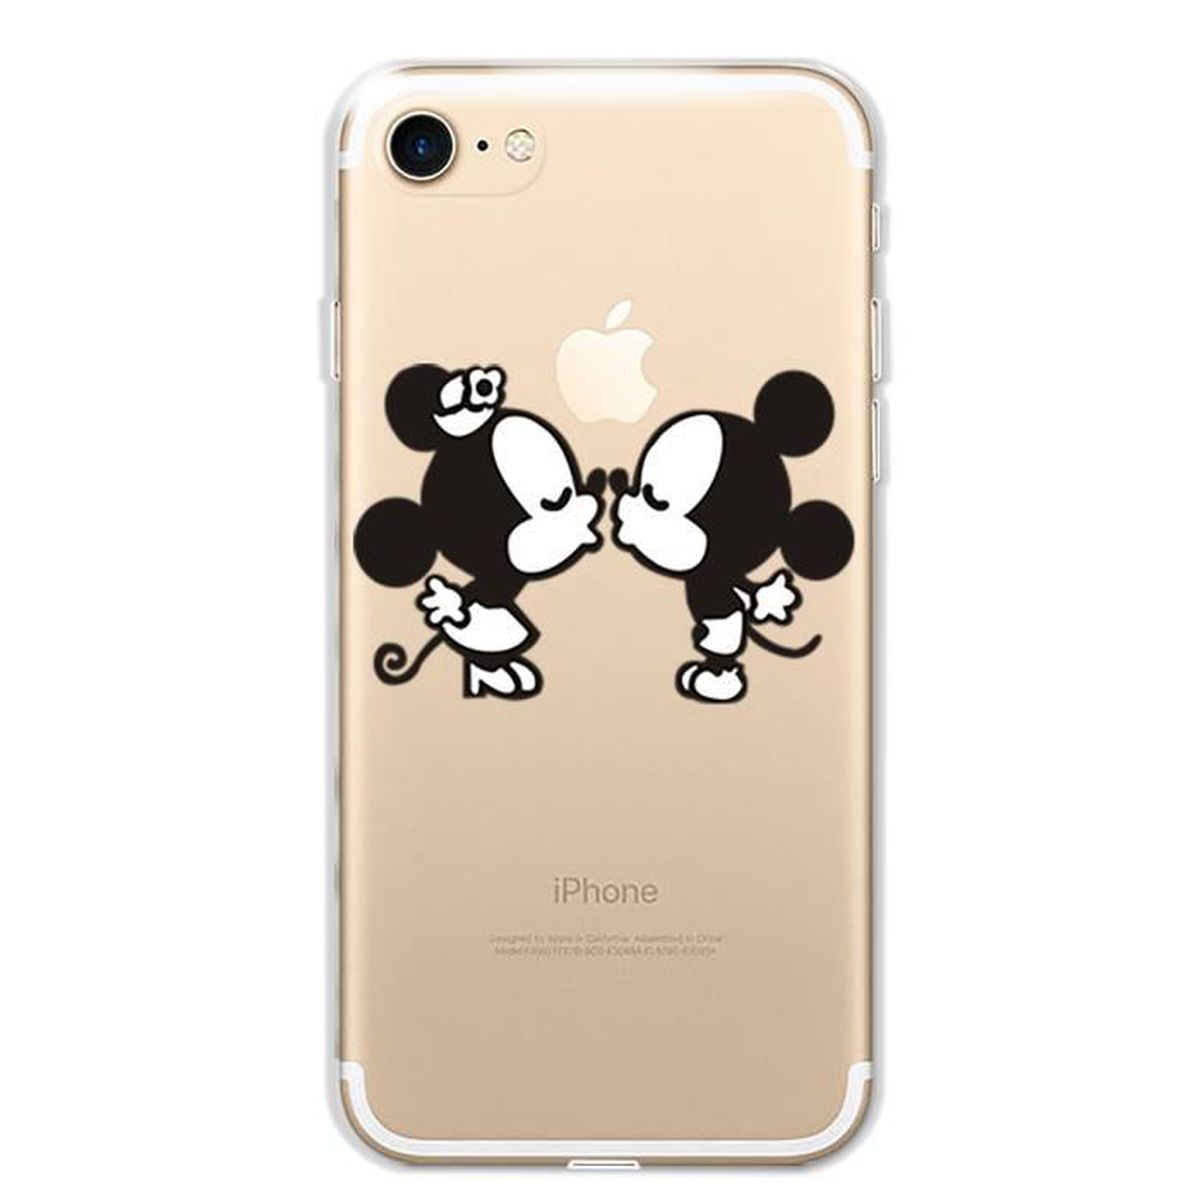 transparente soft coque silicone pour iphone 7 4 7 housse protection dessin anim noir. Black Bedroom Furniture Sets. Home Design Ideas